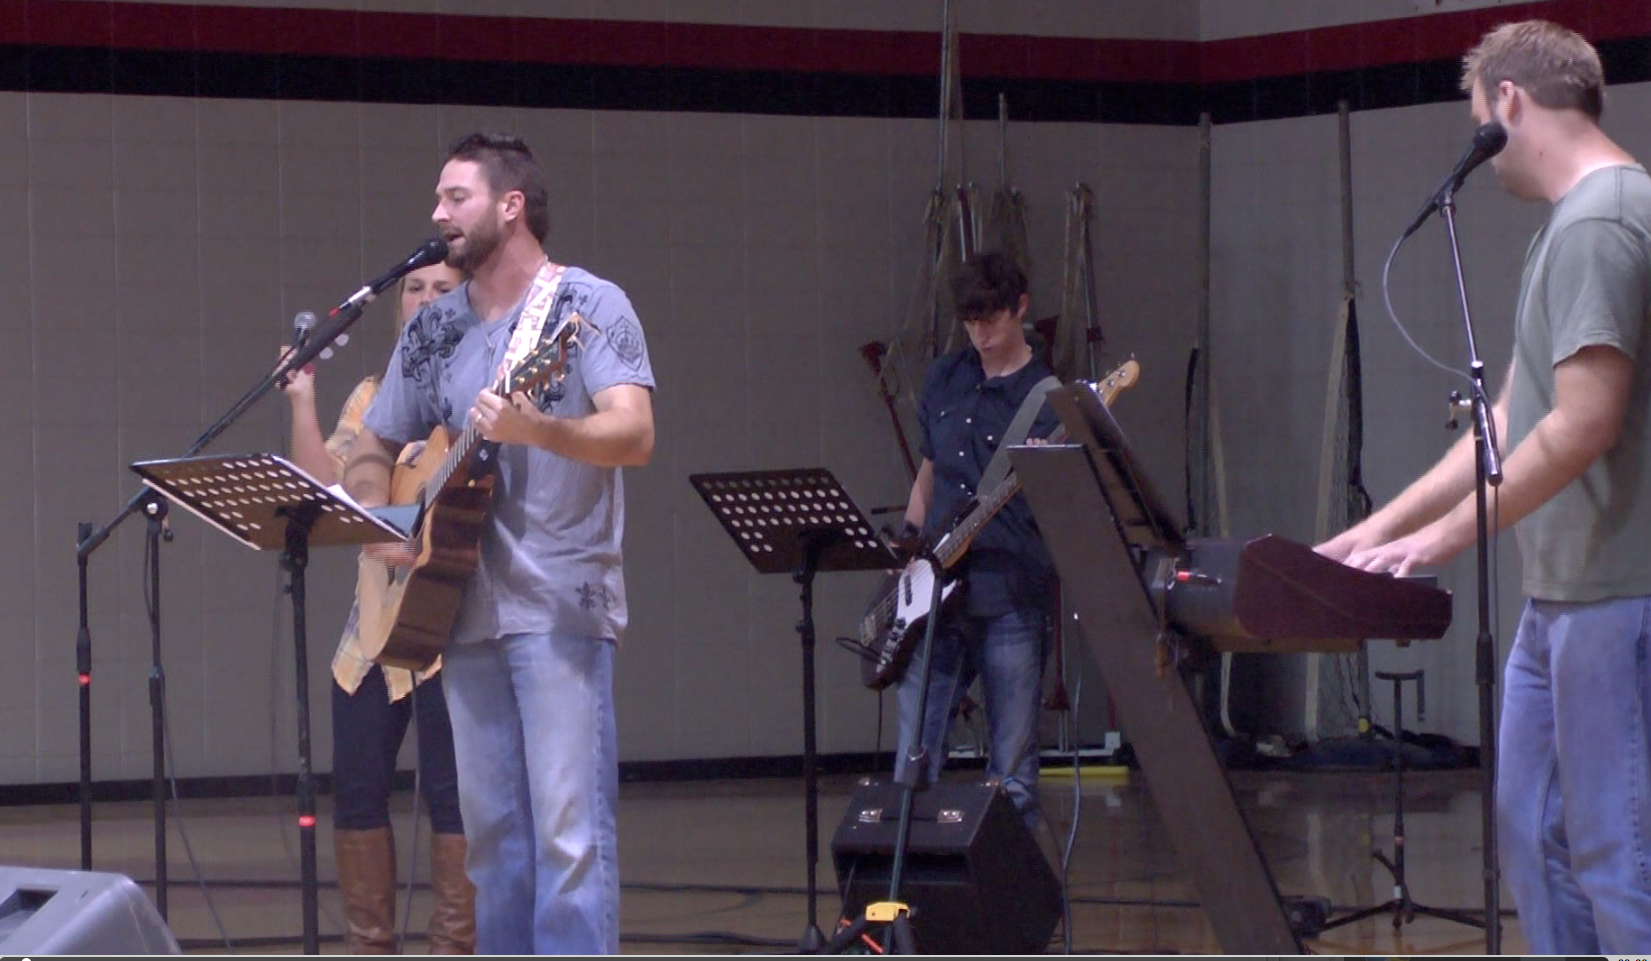 'Fields of Faith' brings students together